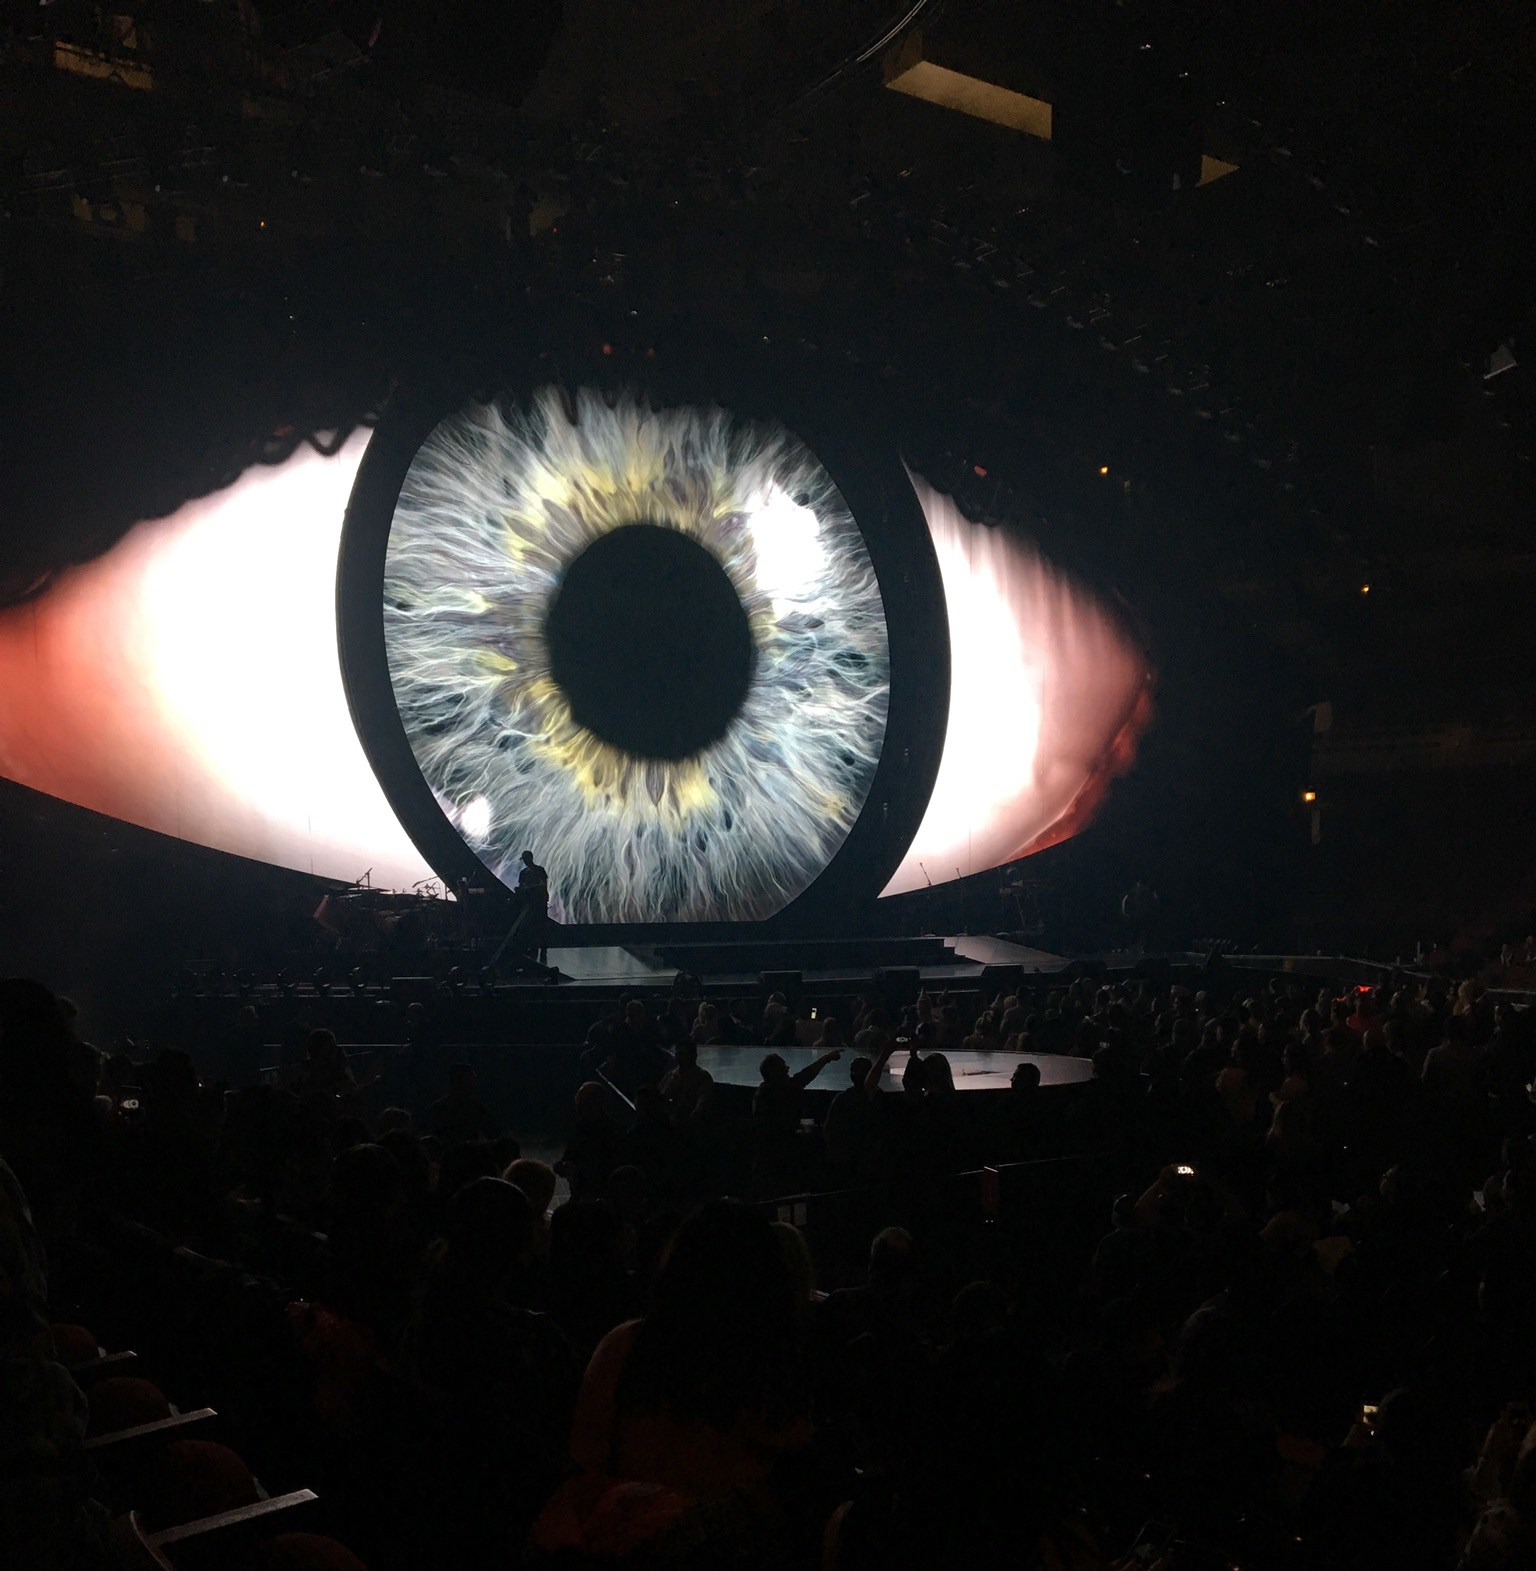 Katy-Perry-Witness-Tour.jpg